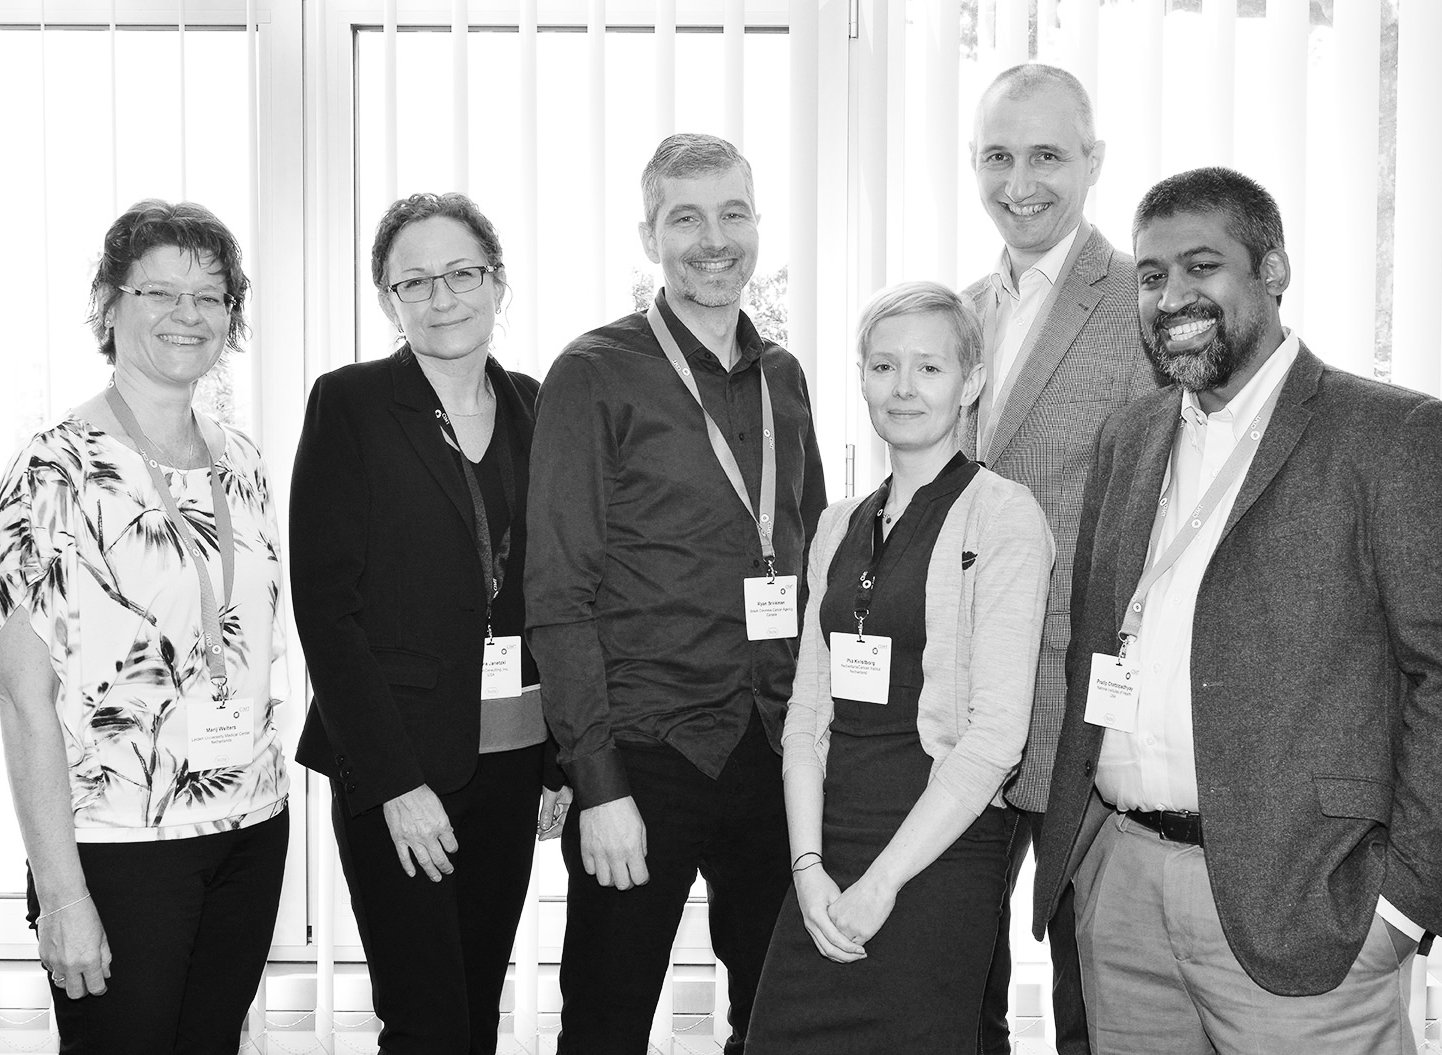 CIP Committee and Speakers at 2015 CIMT Annual Meeting in Mainz